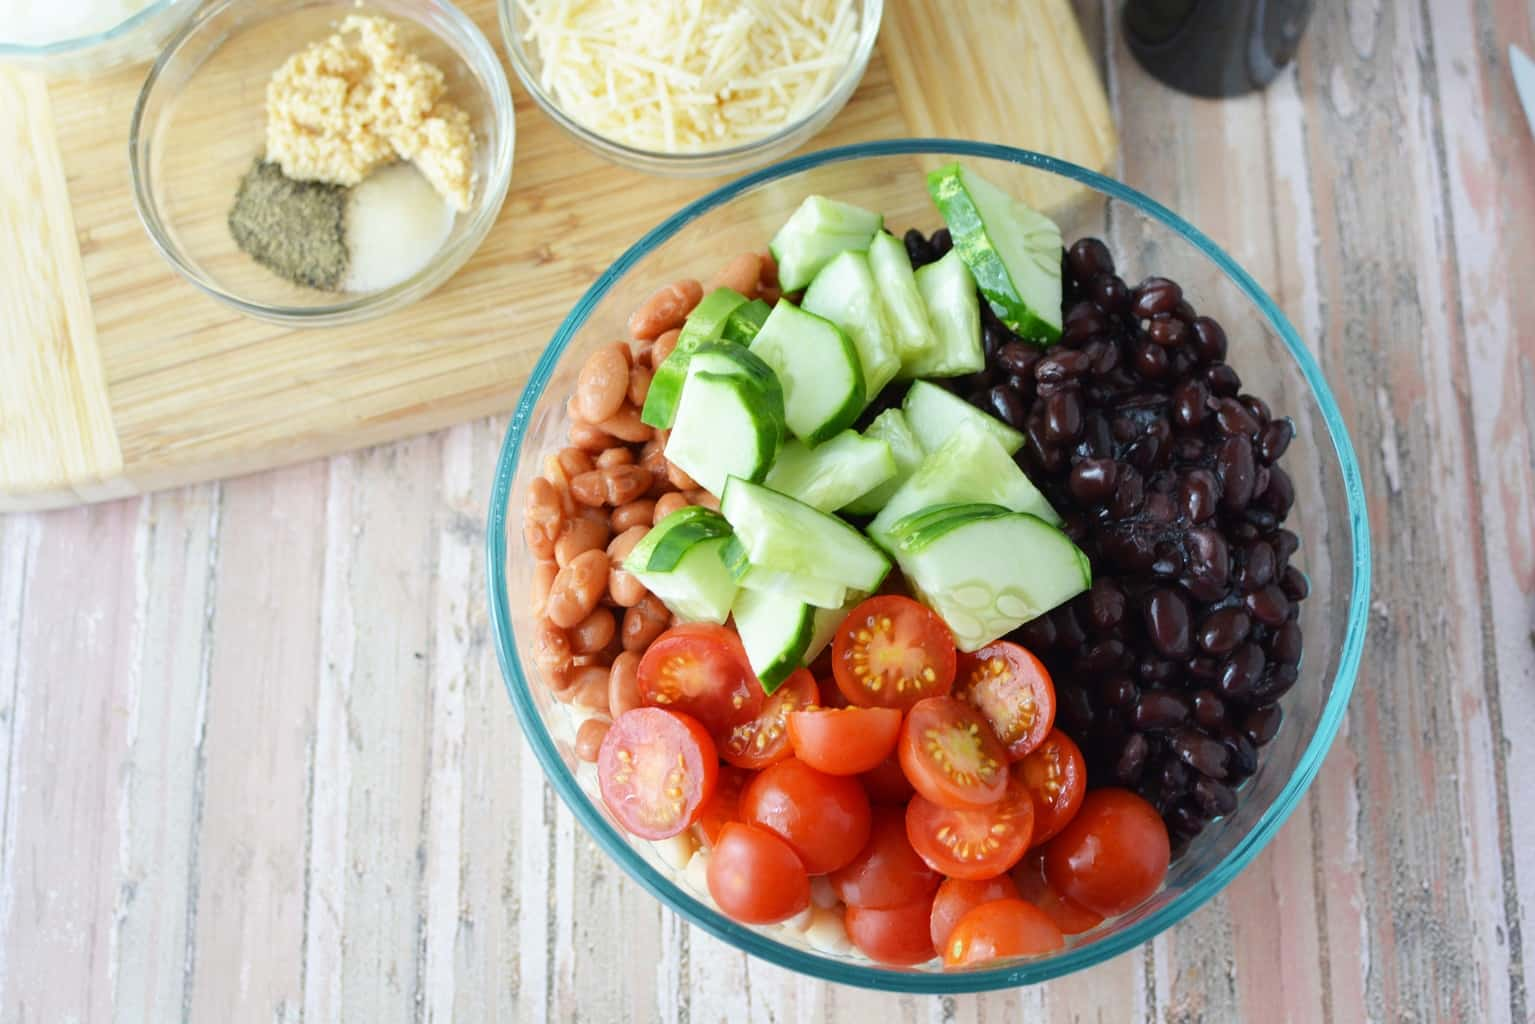 Are you planning a game day or super bowl party? This Easy Cold Bean Salad has the taste of 'mush' beans along with the crunch of an onion and a cucumber.  It also has a balsamic-y taste because of the vinegar, but it's not too strong.